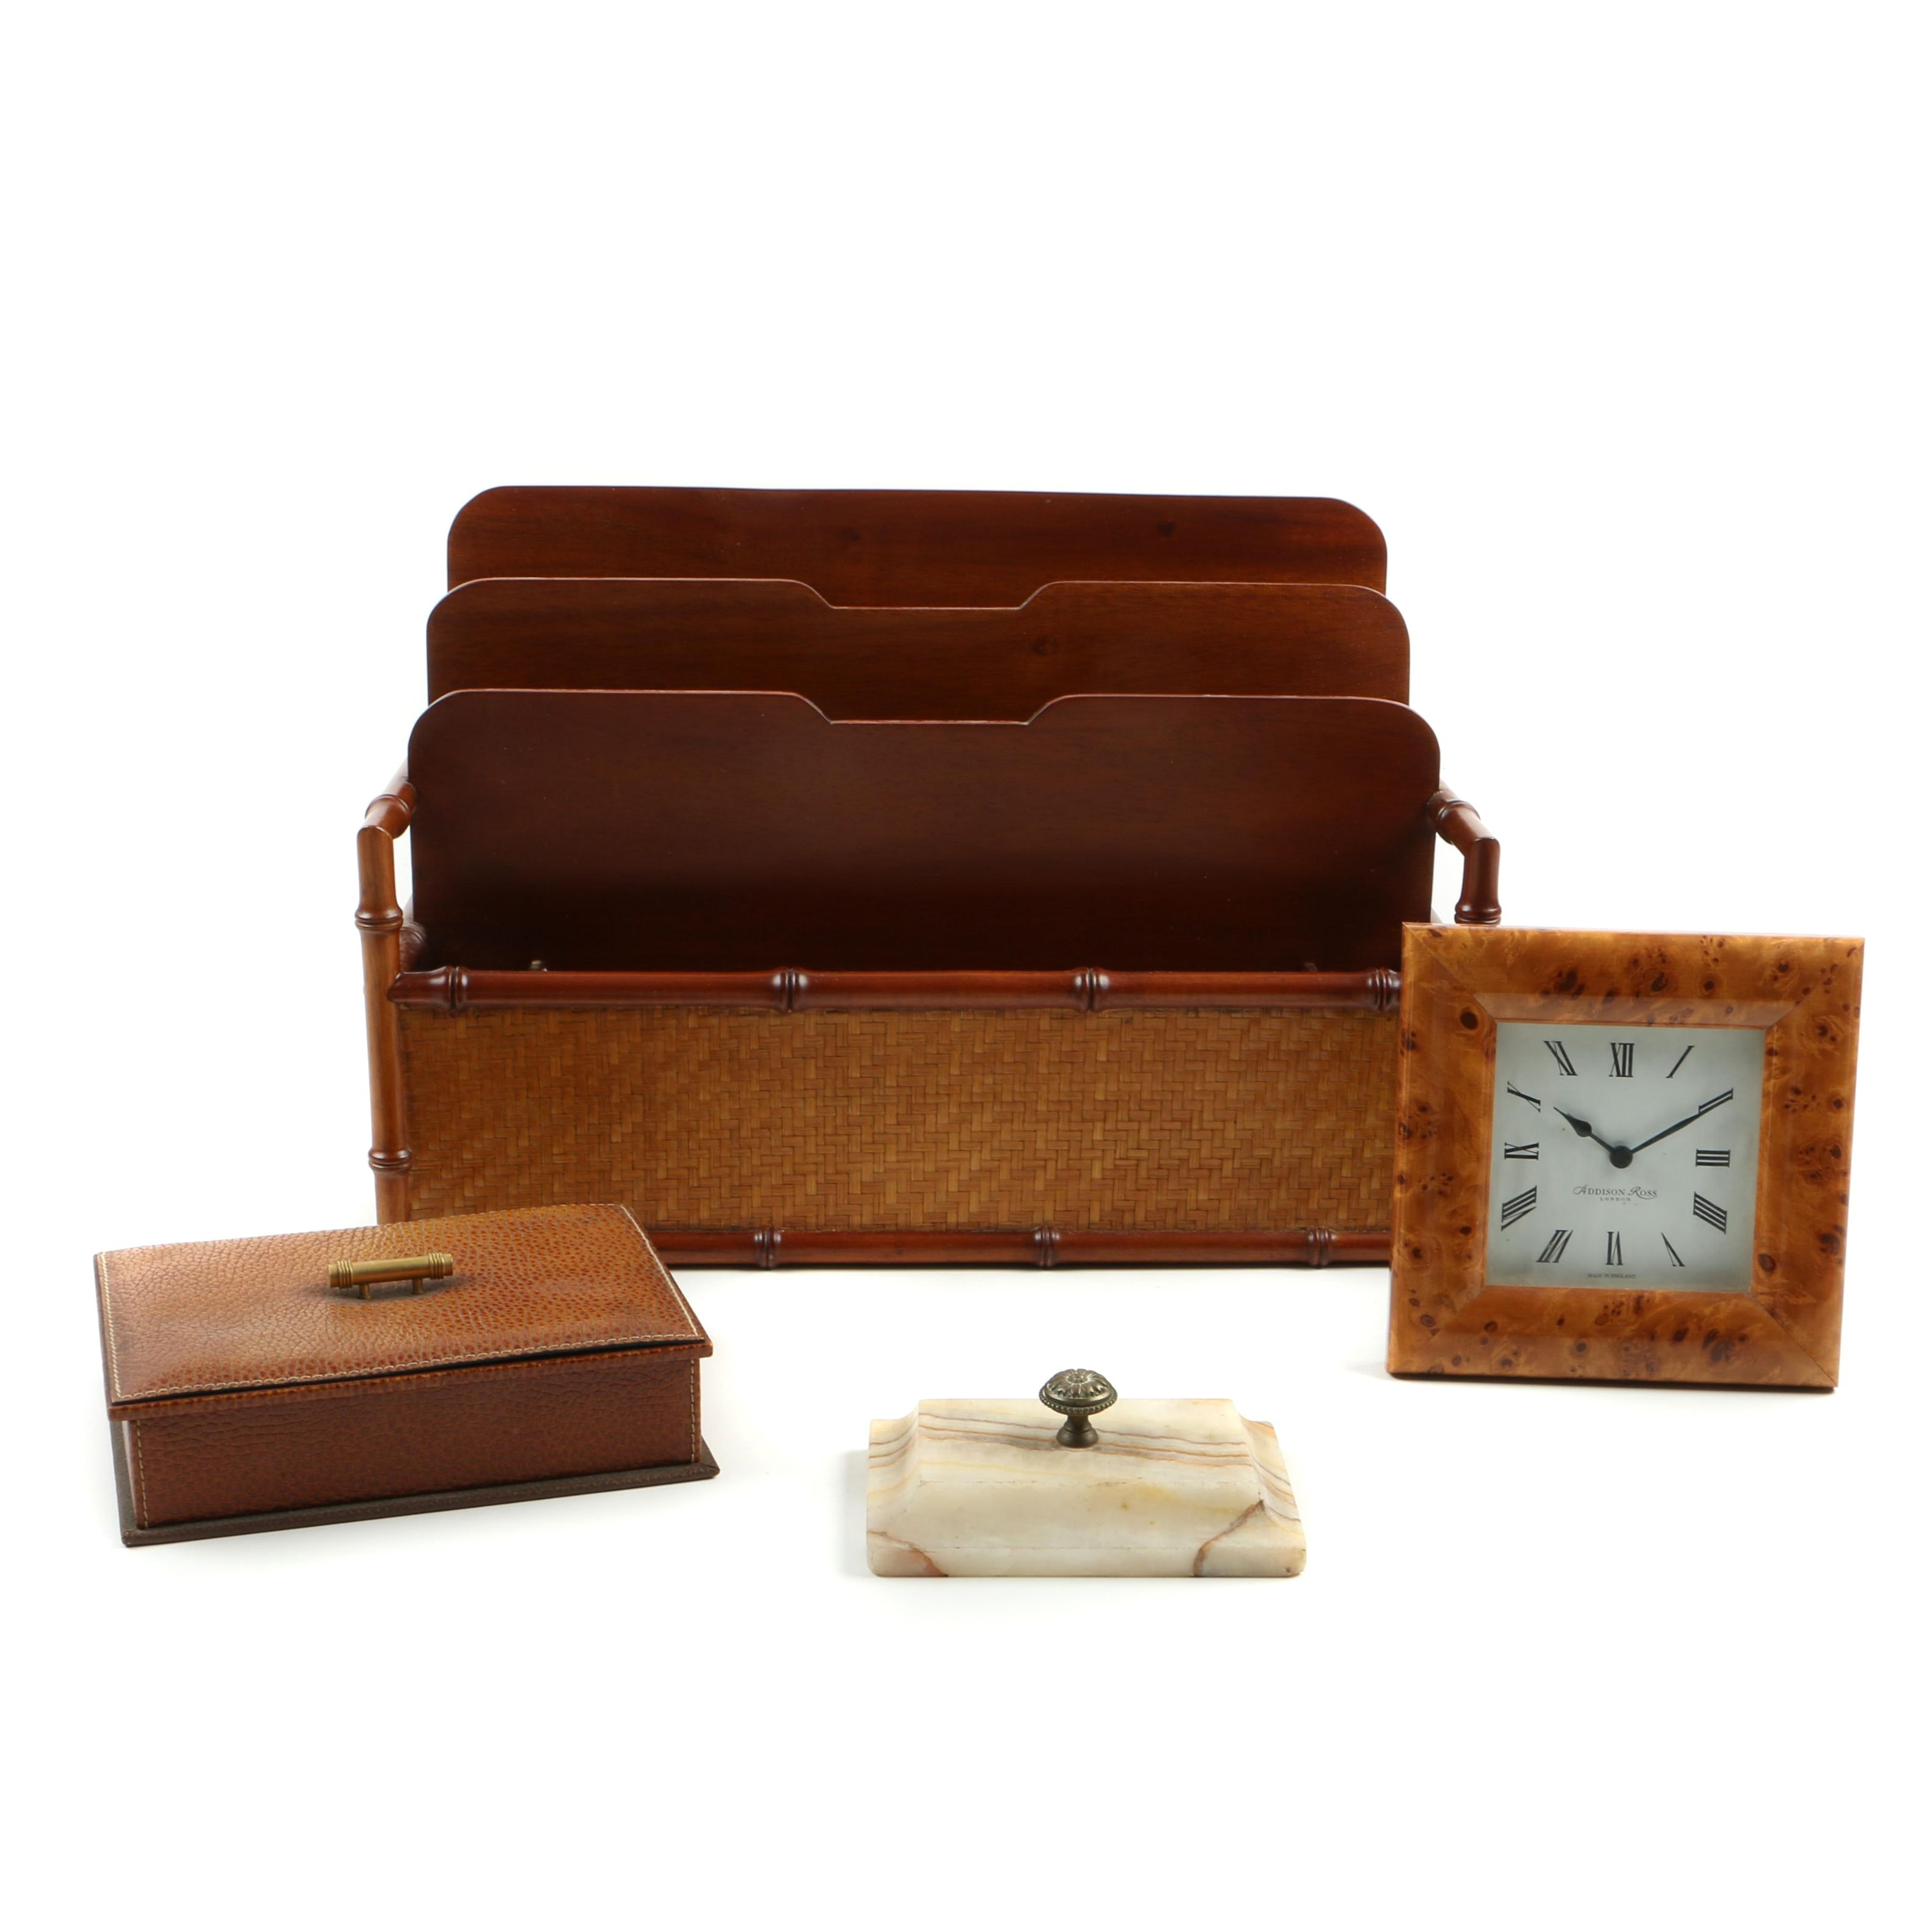 Christian Dior Leather Box and Other Desk Accessories